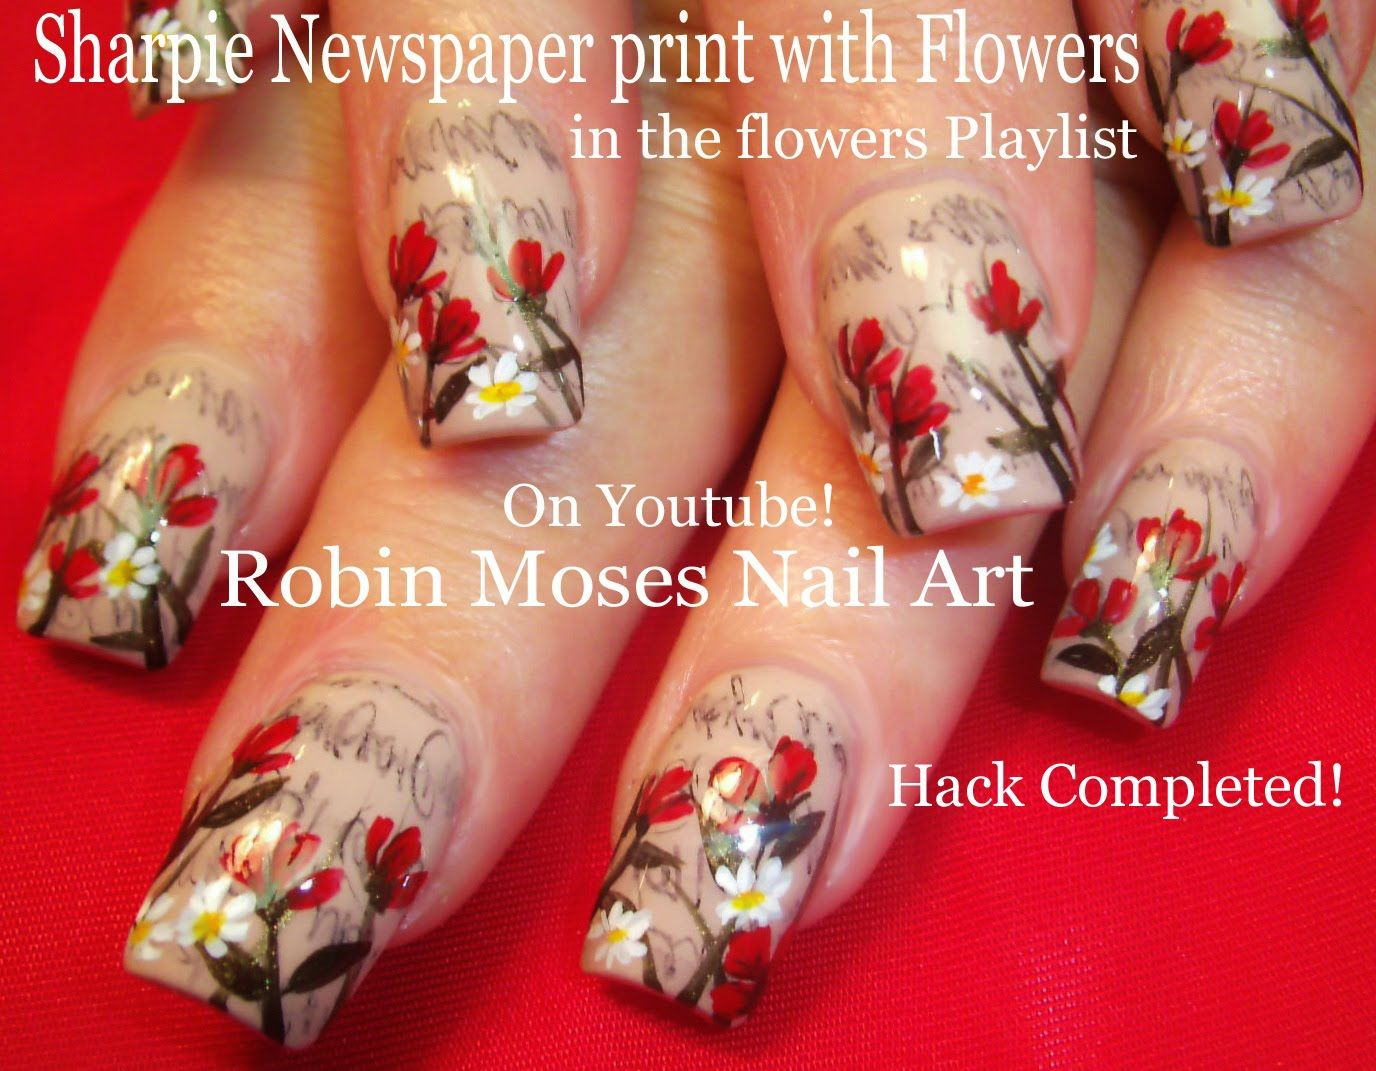 Easy Newspaper Nail Hack with flowers! #sharpie #nails #nail #art #trends #spring #easy #diy #howto #hack #nailhack #sharpienails #design #tutorial #flowers #spring #daisy